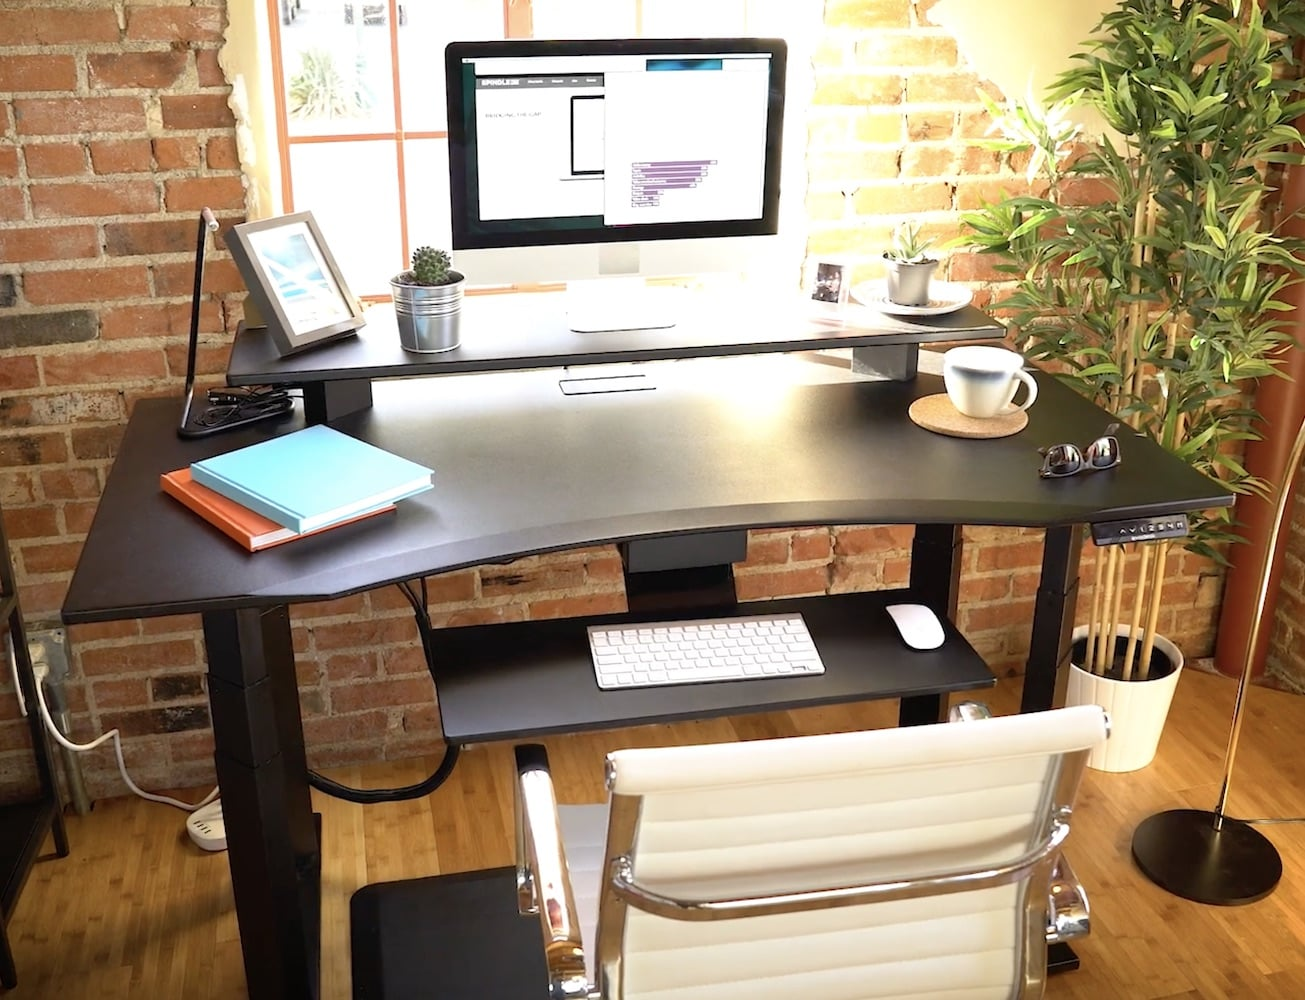 EvoDesk Electronic Height Adjustable Desk